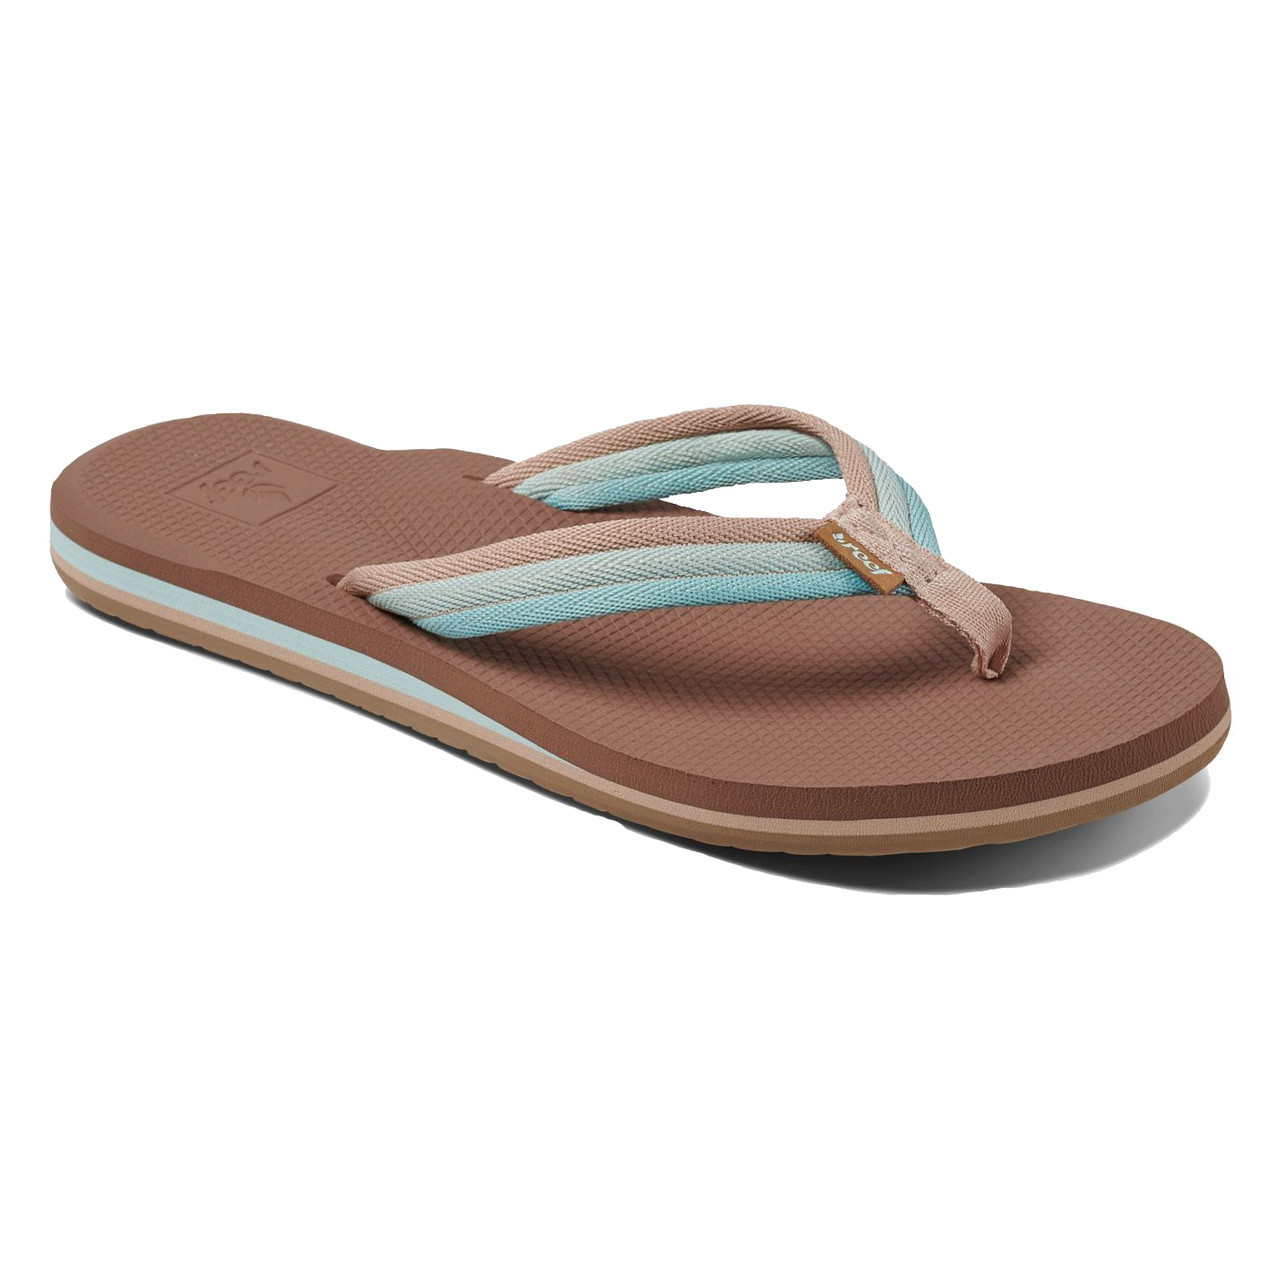 b1f67599eae5 Reef Women s Flip Flops - Reef Voyage Lite Beach - Aqua - Surf and Dirt